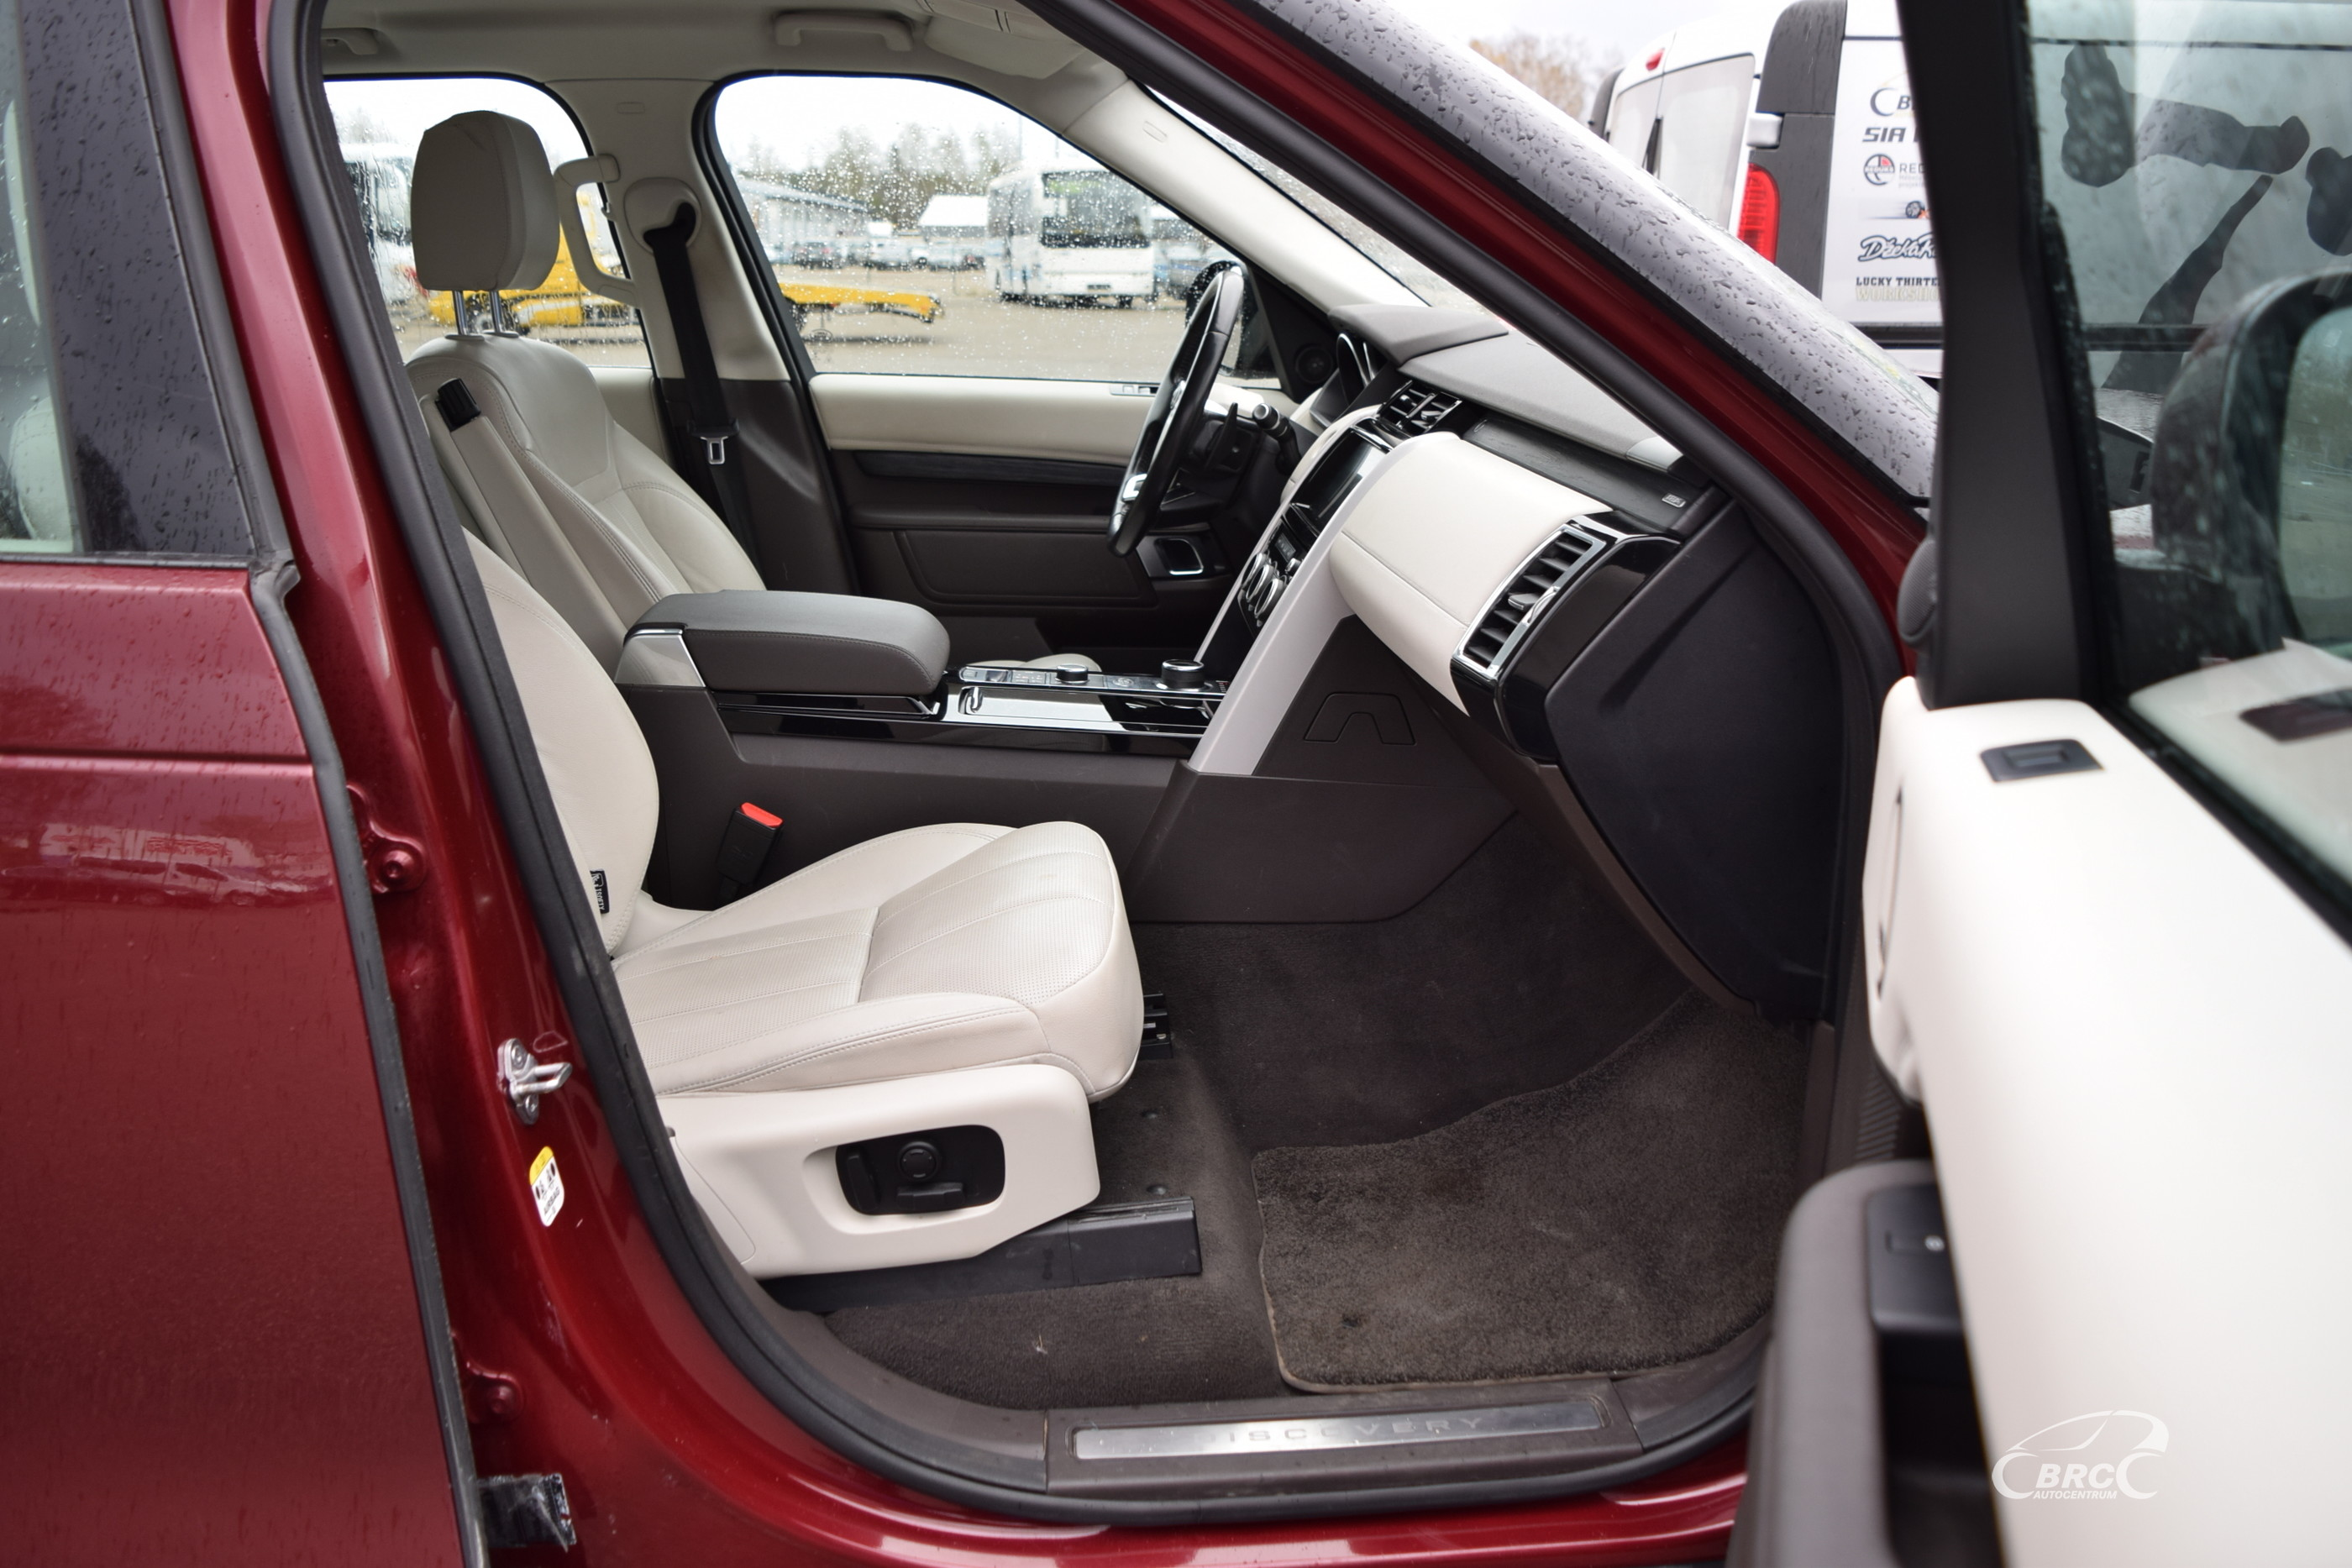 Land Rover Discovery HSE Adventure 7 seats